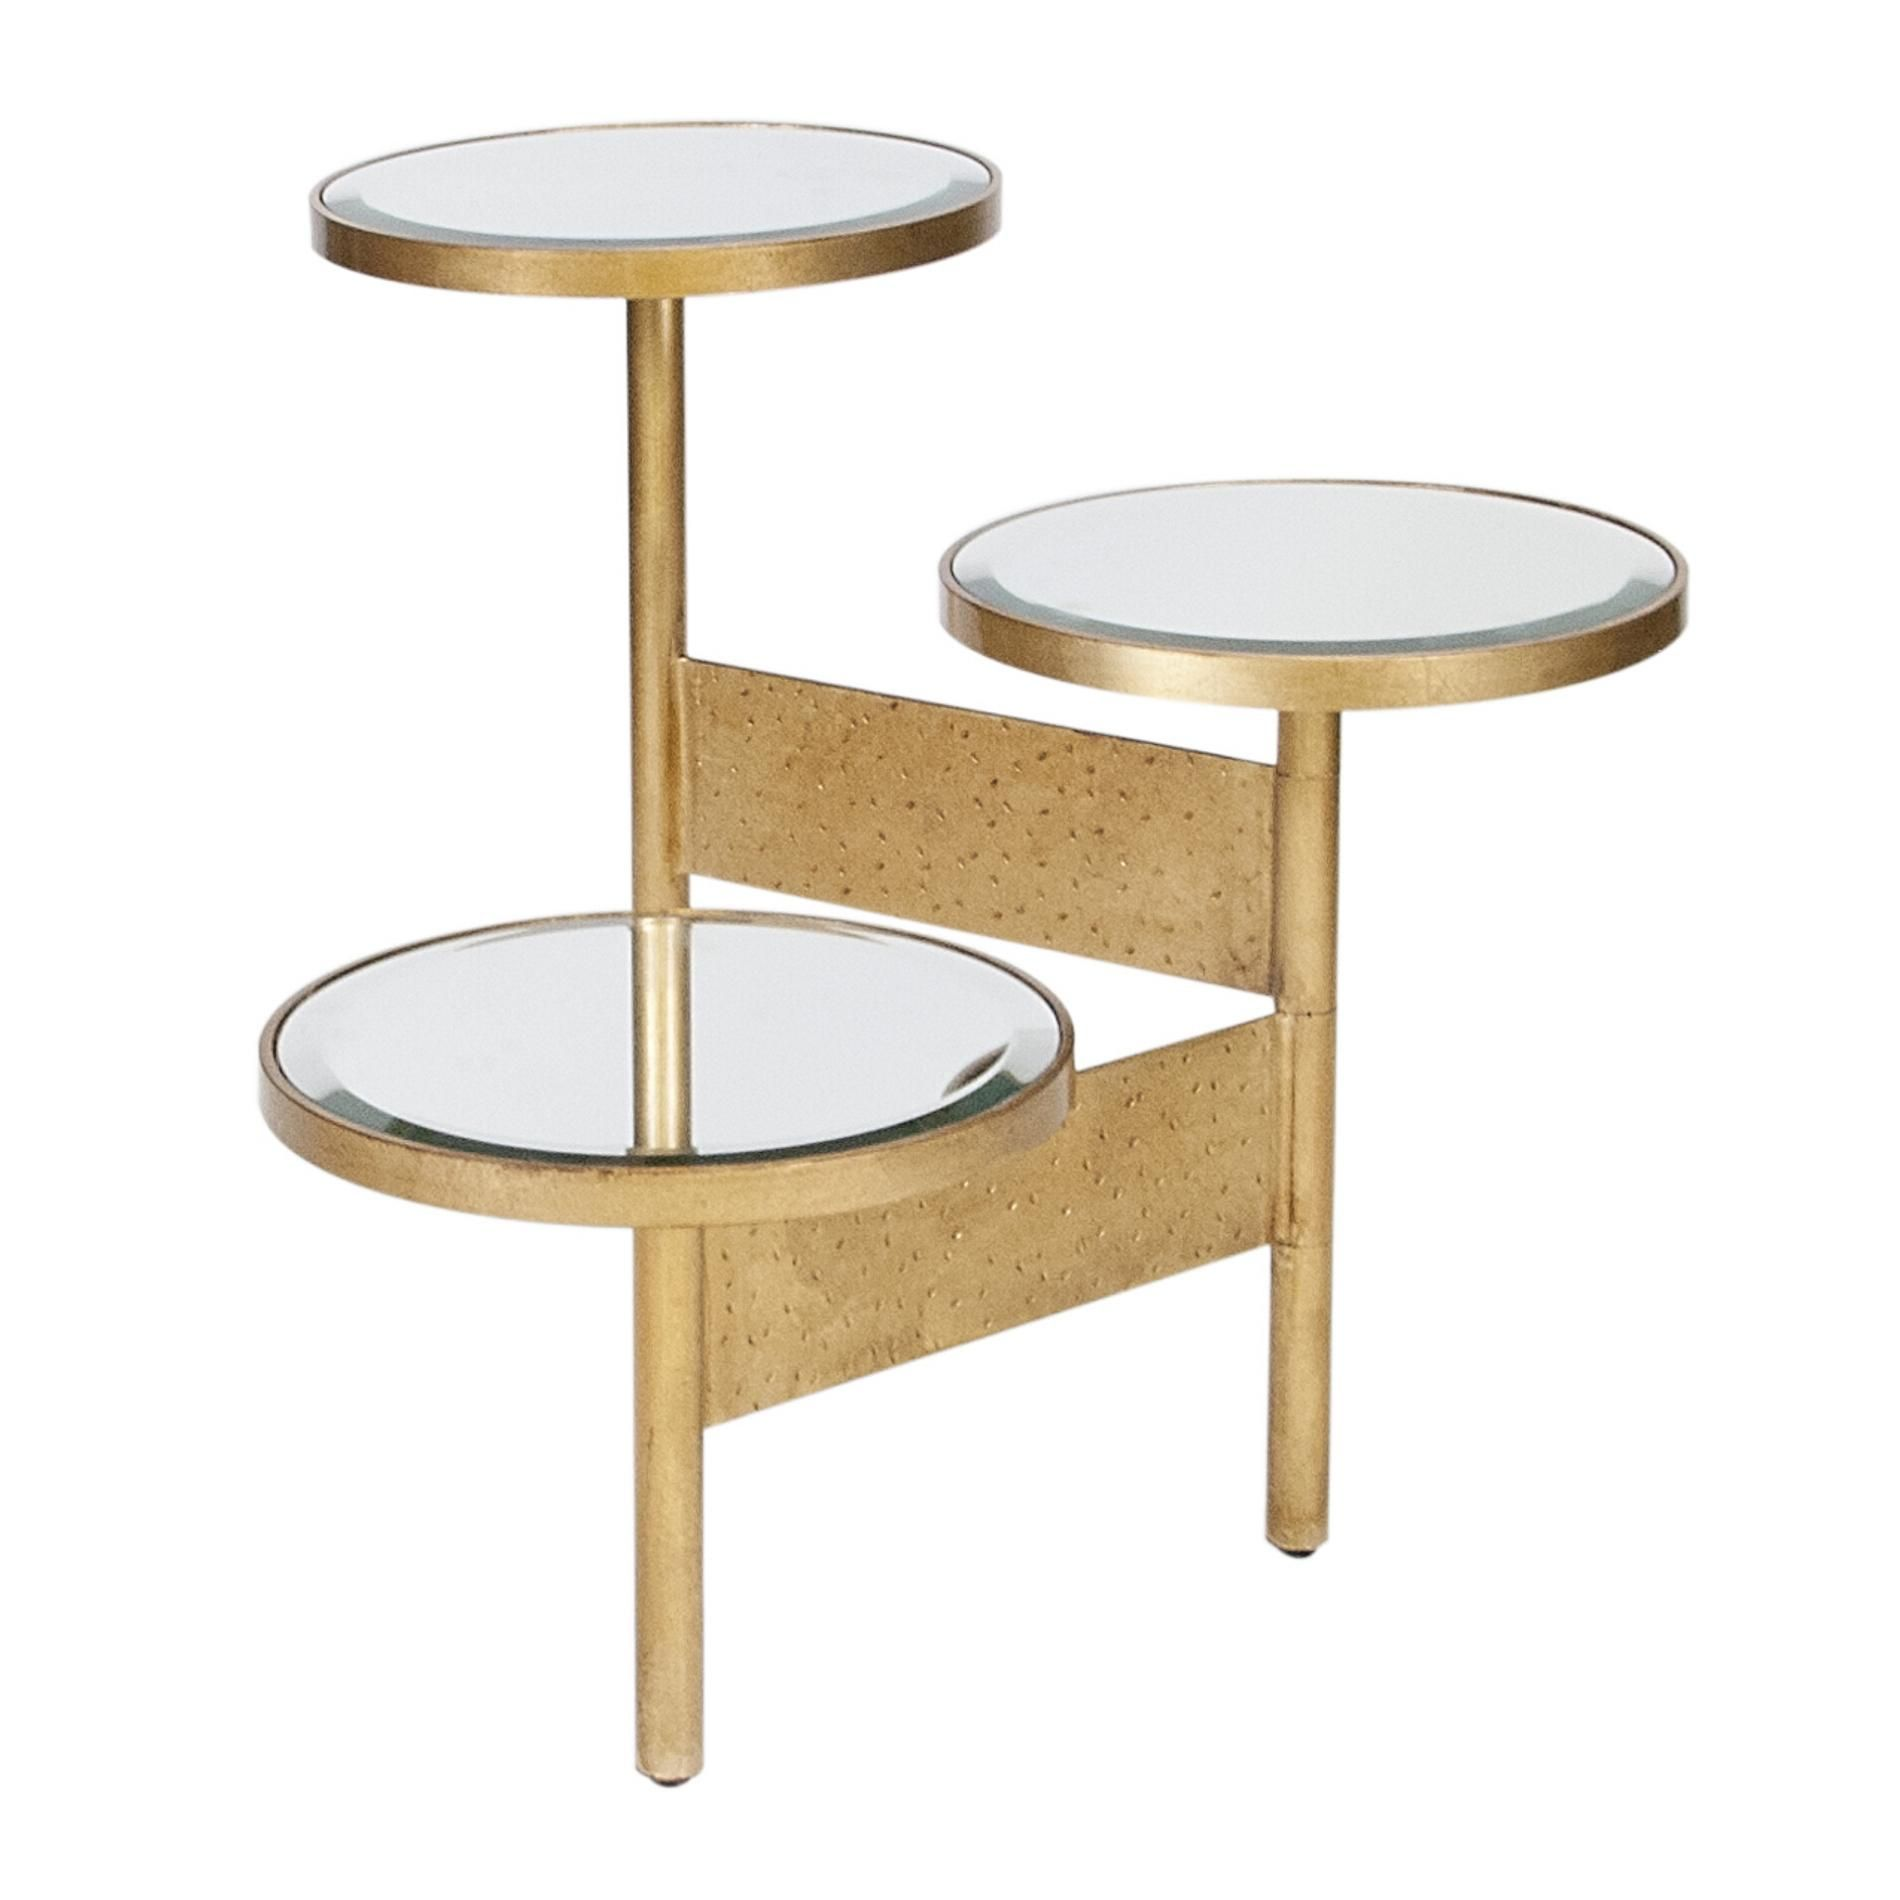 3 Tier Hinged Side Table In Gold Leaf Available With Beveled Mirror Or Black Marble Tops 26 H Adjustable Width And Depth Each Mi Side Table Table Furniture